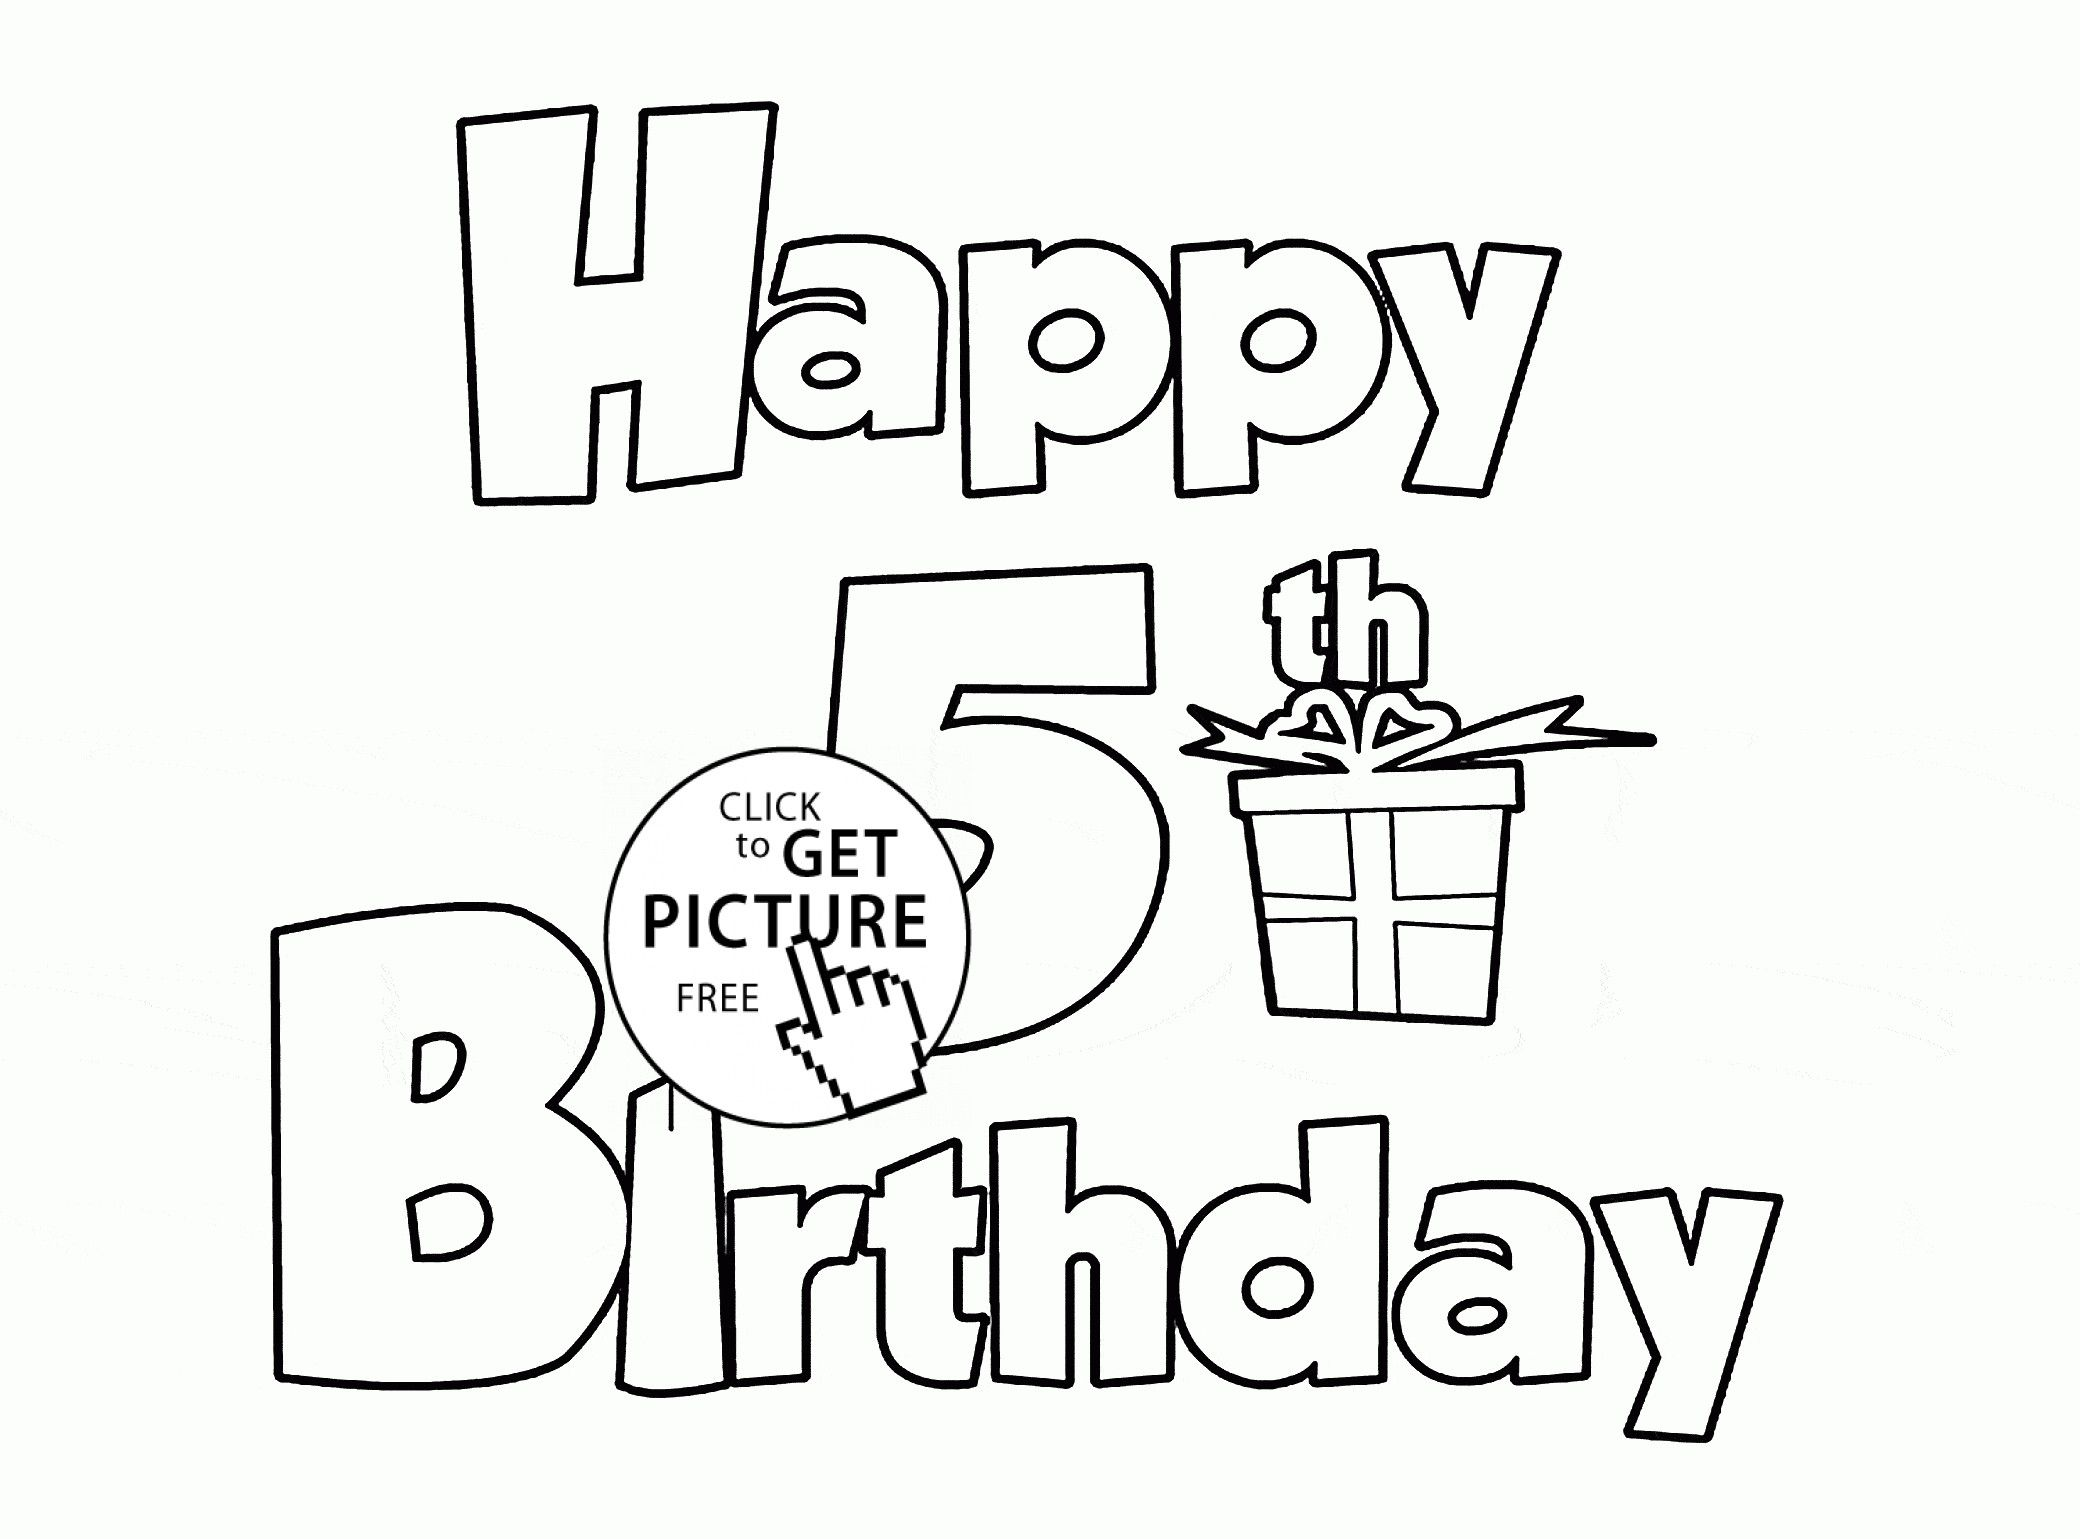 Happy Birthday Coloring Card Luxury Happy 5th Birthday Letters Card Coloring Page Birthday Coloring Pages Happy Birthday Coloring Pages Coloring Birthday Cards